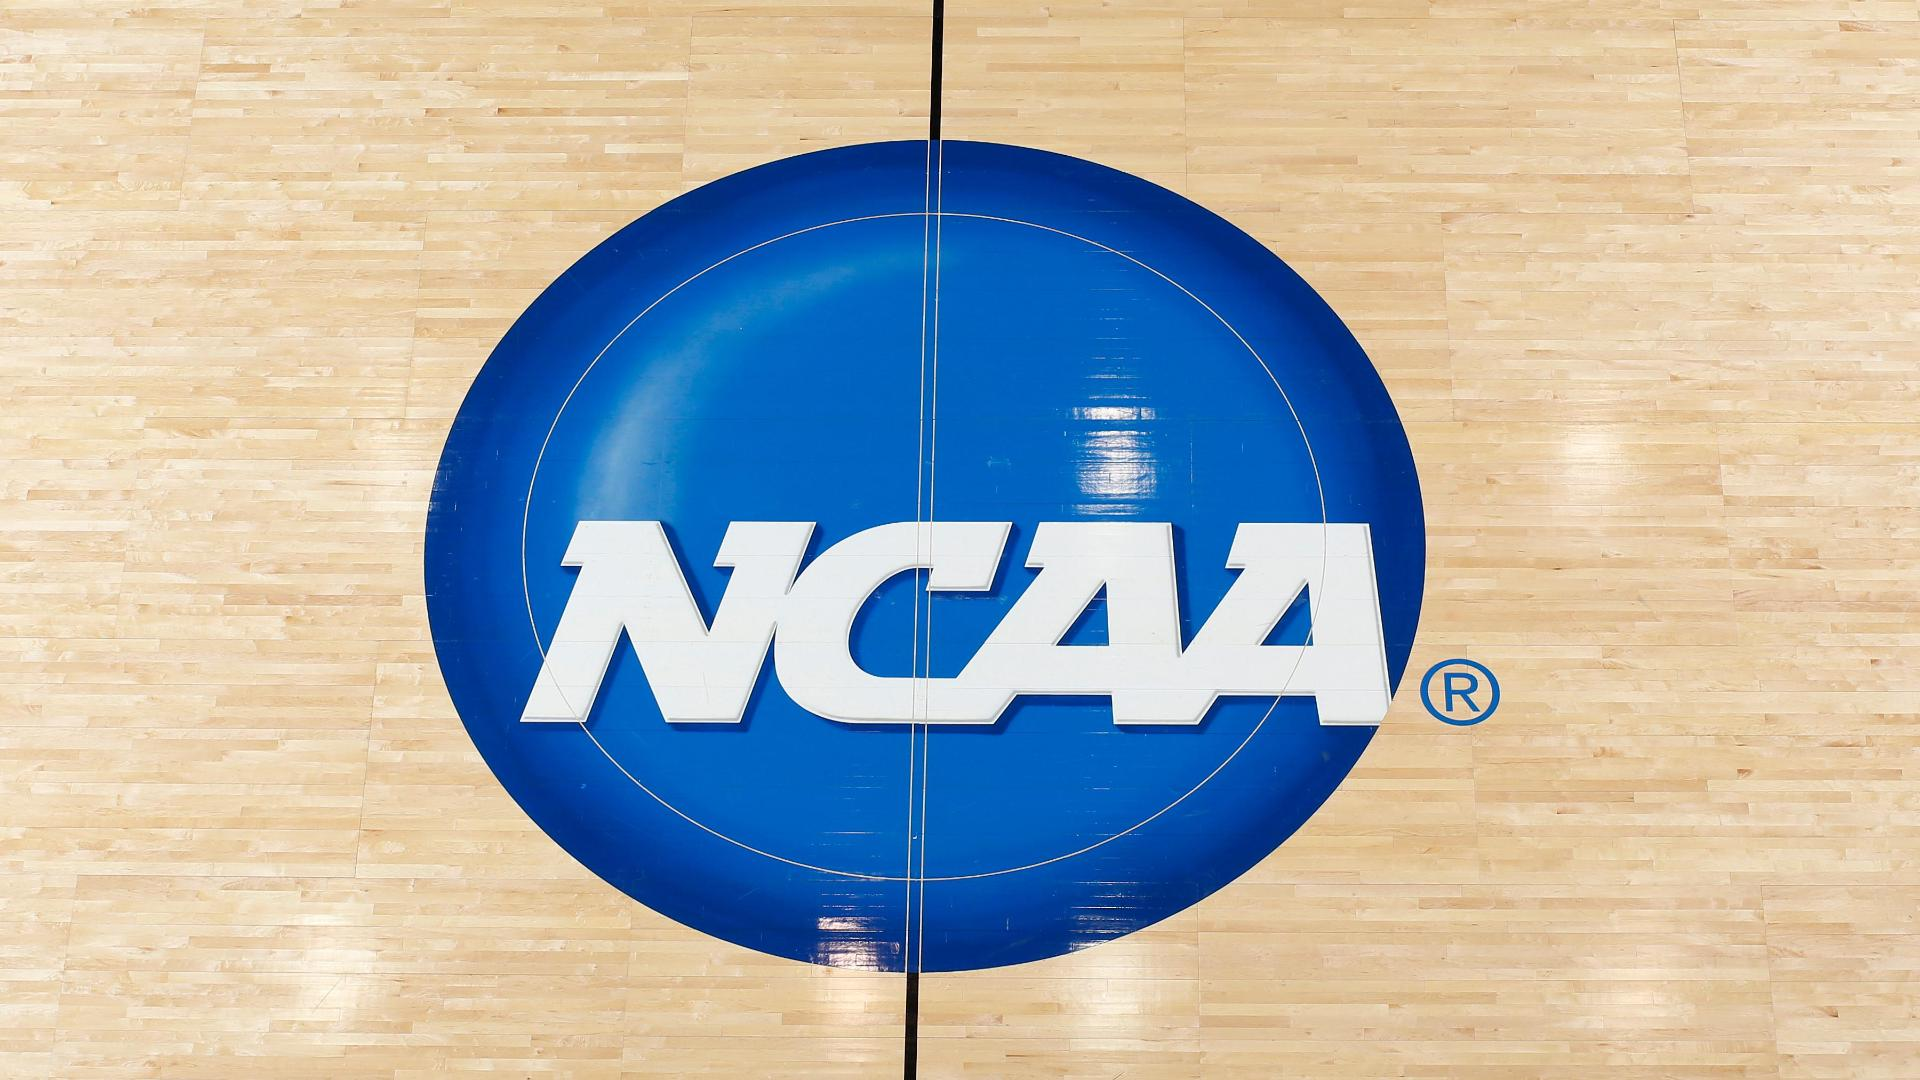 http://a.espncdn.com/media/motion/2014/0619/dm_140618_ncaa_trial_midpoint27/dm_140618_ncaa_trial_midpoint27.jpg